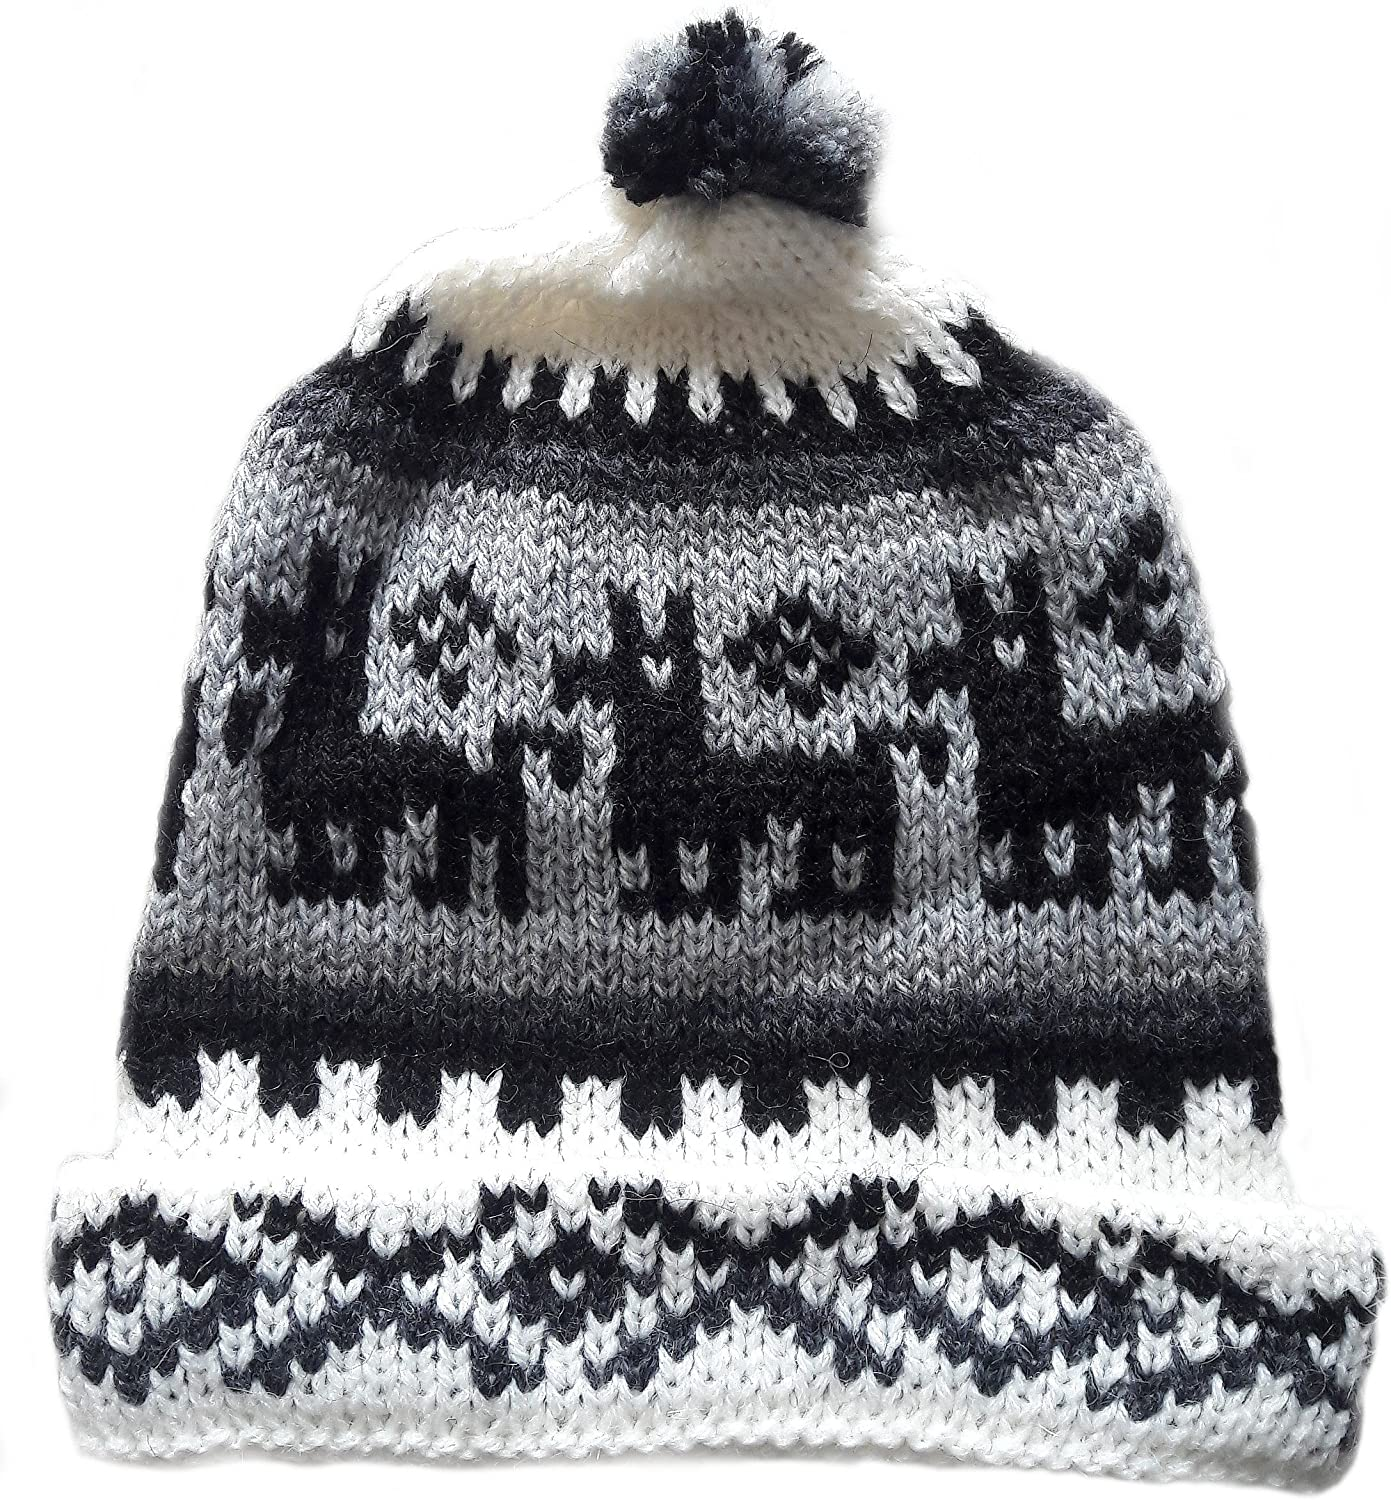 Alpakaandmore, Unisex Black and White Peruvian Beanie Hat, Alpaca Wool Handmade